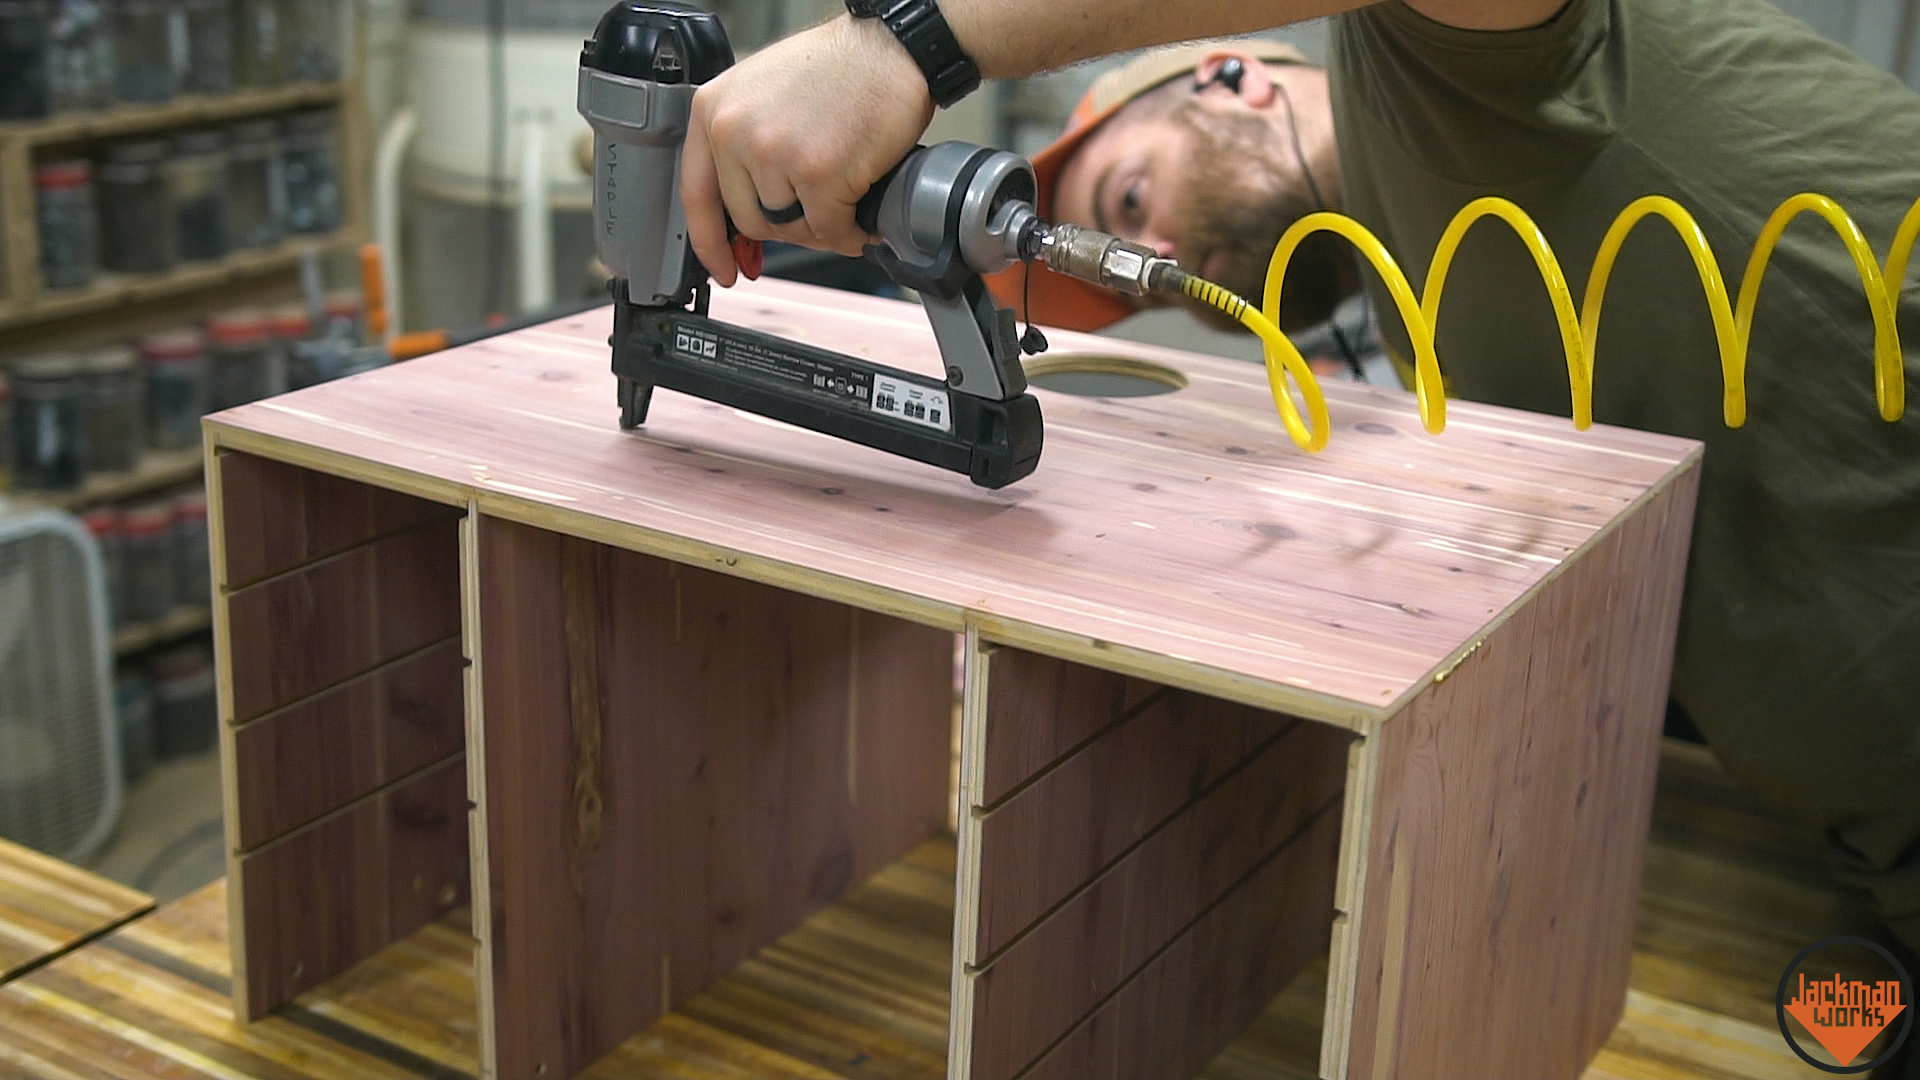 Router table storage cabinet 17 jackman works jackmanjackman worksfence systemrouter tablehow to build a router table woodworkingrouter liftshop storagestorageorganizationworkshop organization greentooth Gallery